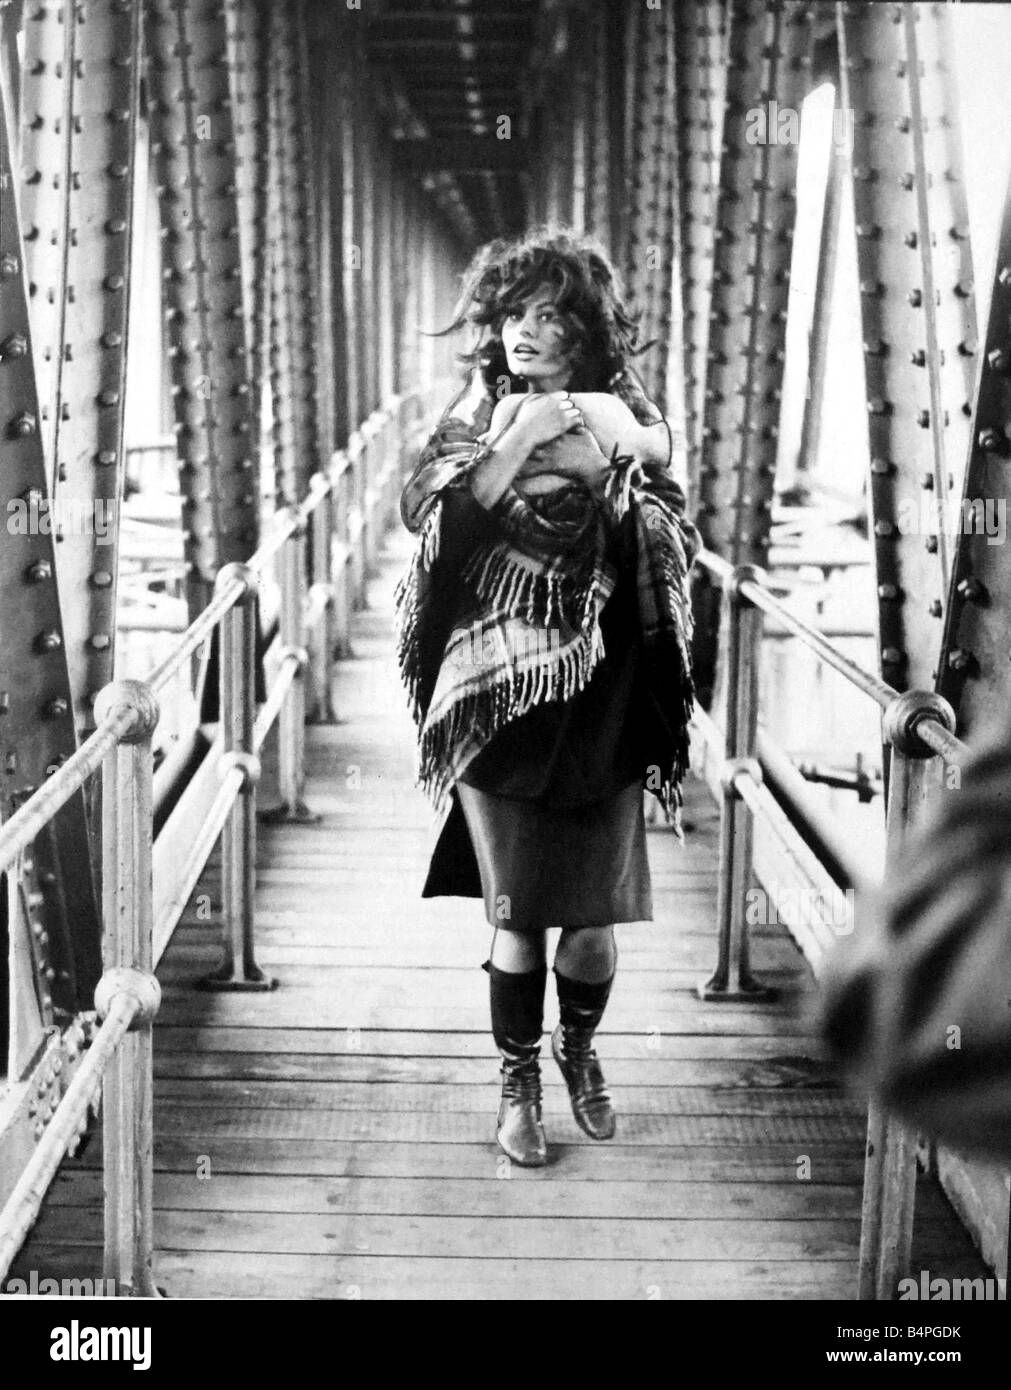 Italian film star Sophia Loren walks along the catwalk on the Crumlin Viaduct where she is filming scenes for the - Stock Image